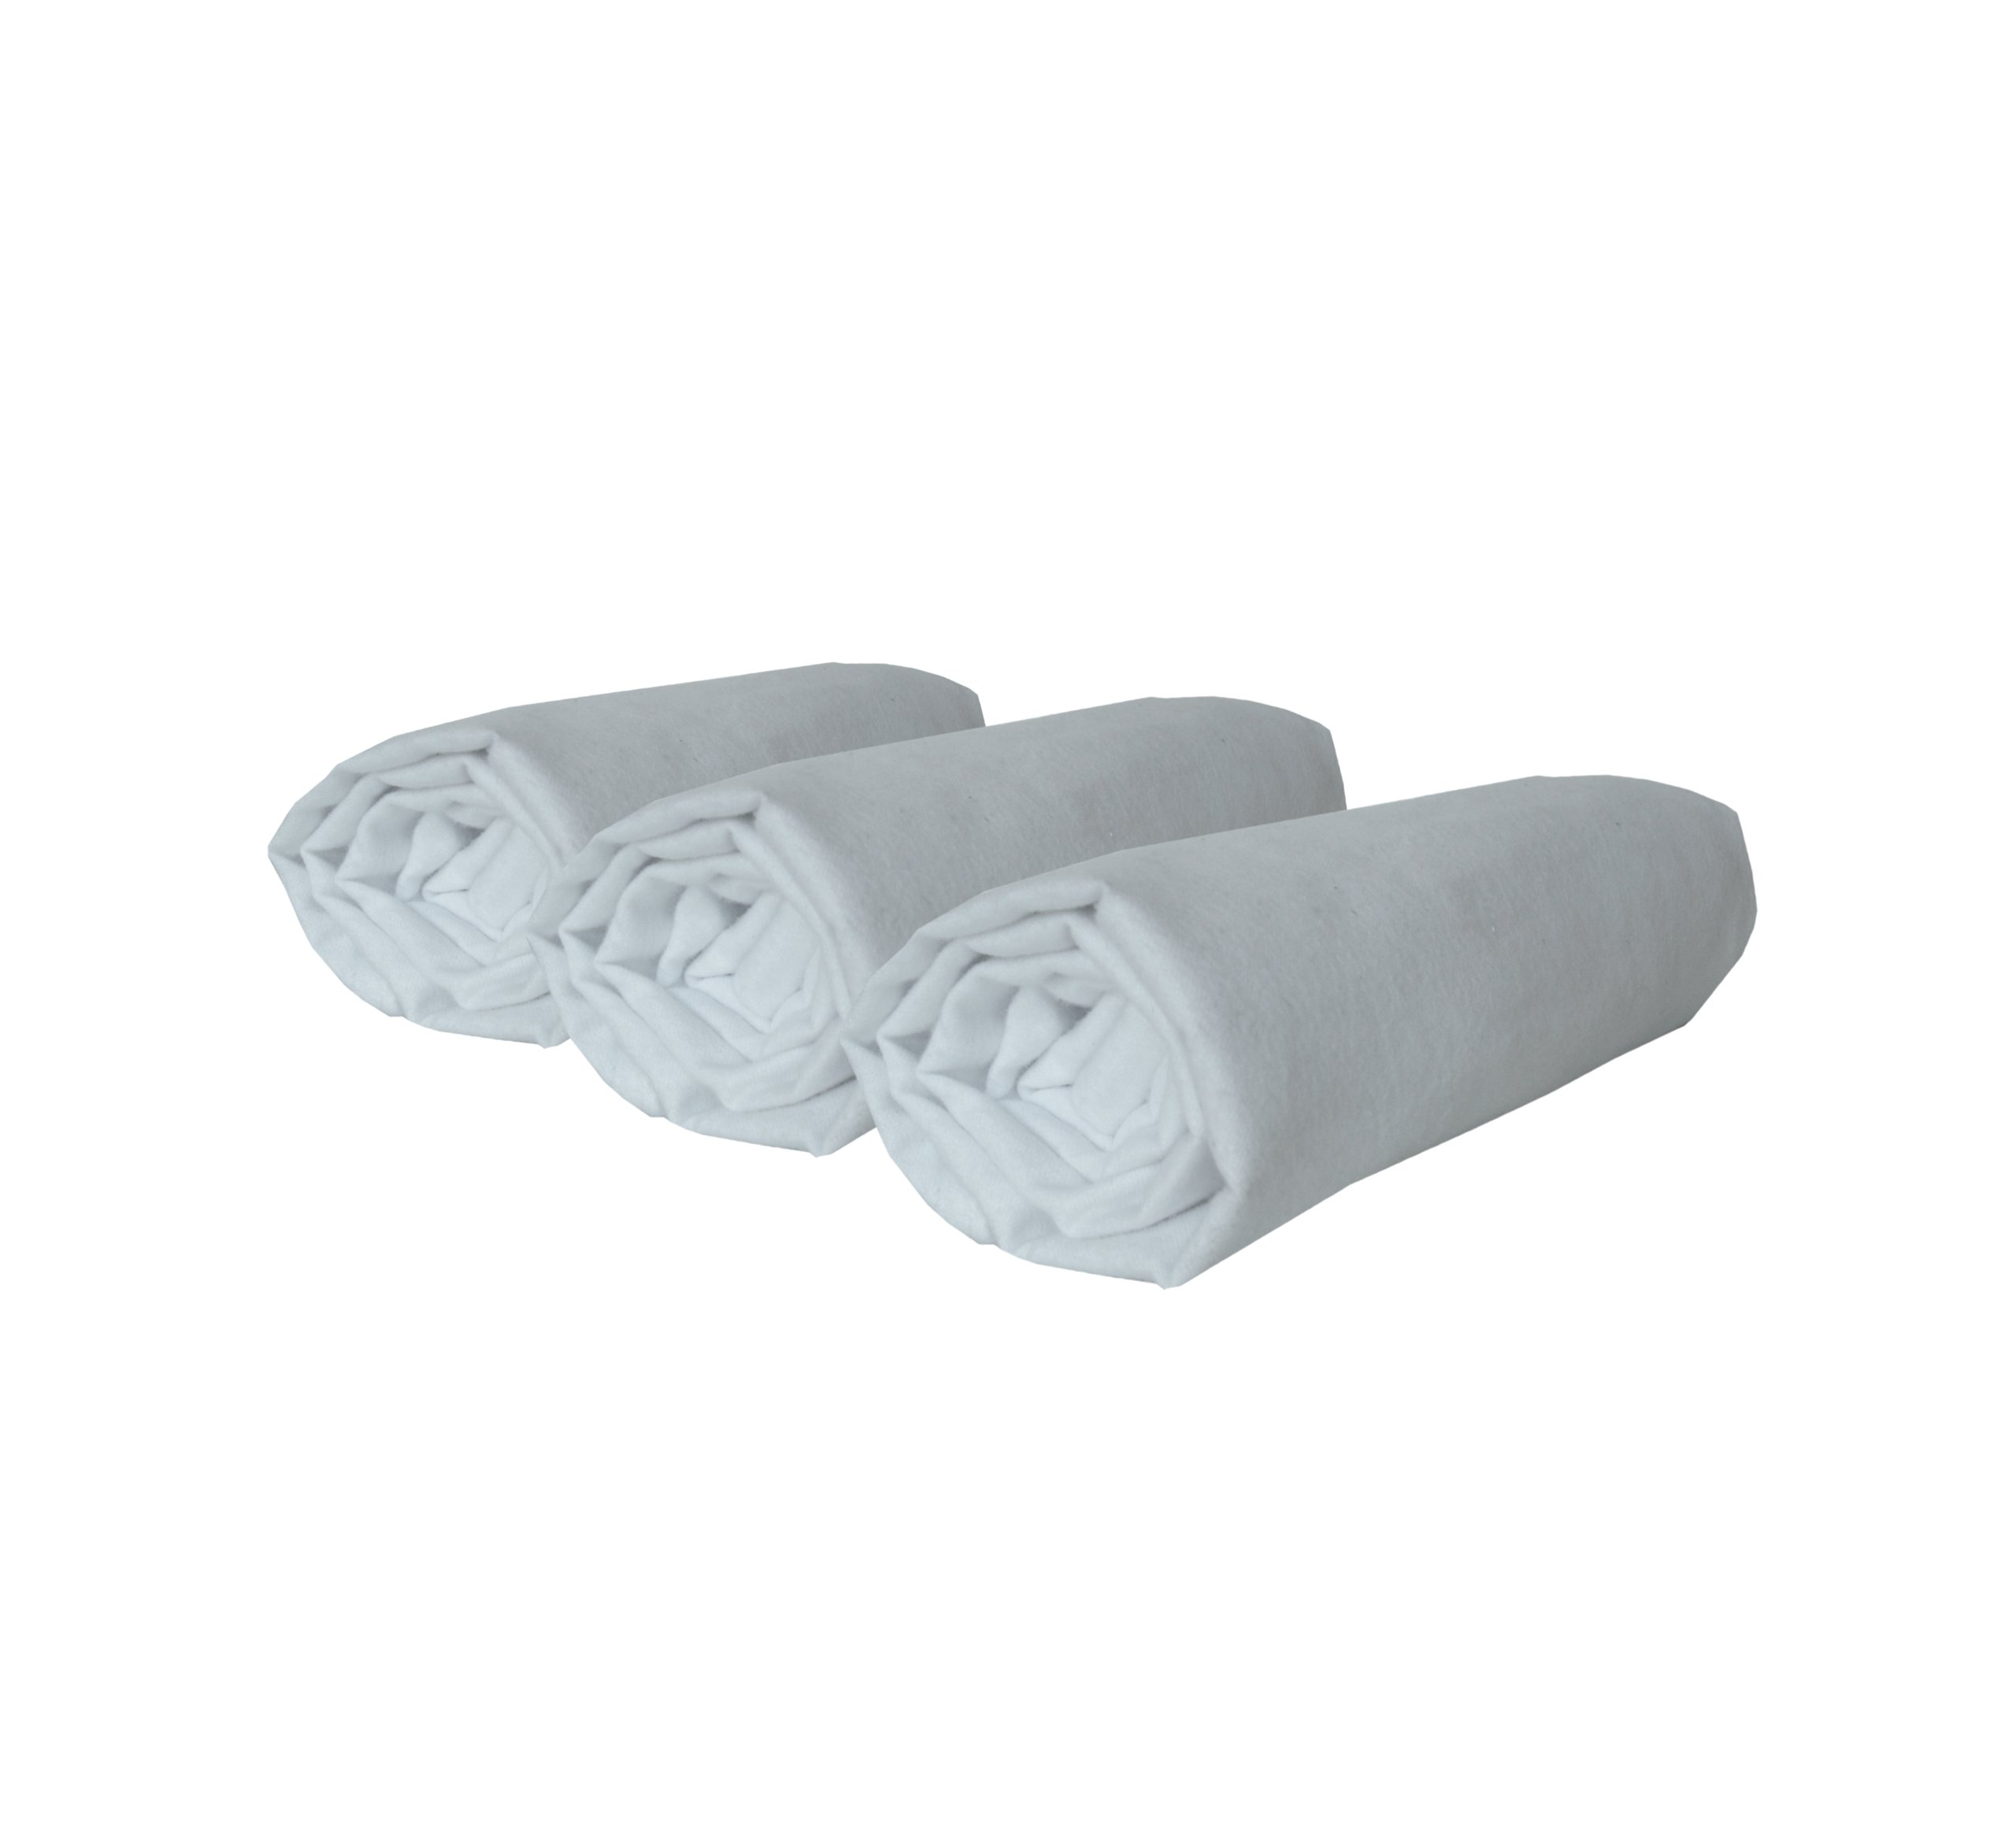 Phil & Teds Peanut Baby Carrier & Bassinet Cotton Sheet Set - 3 Pack